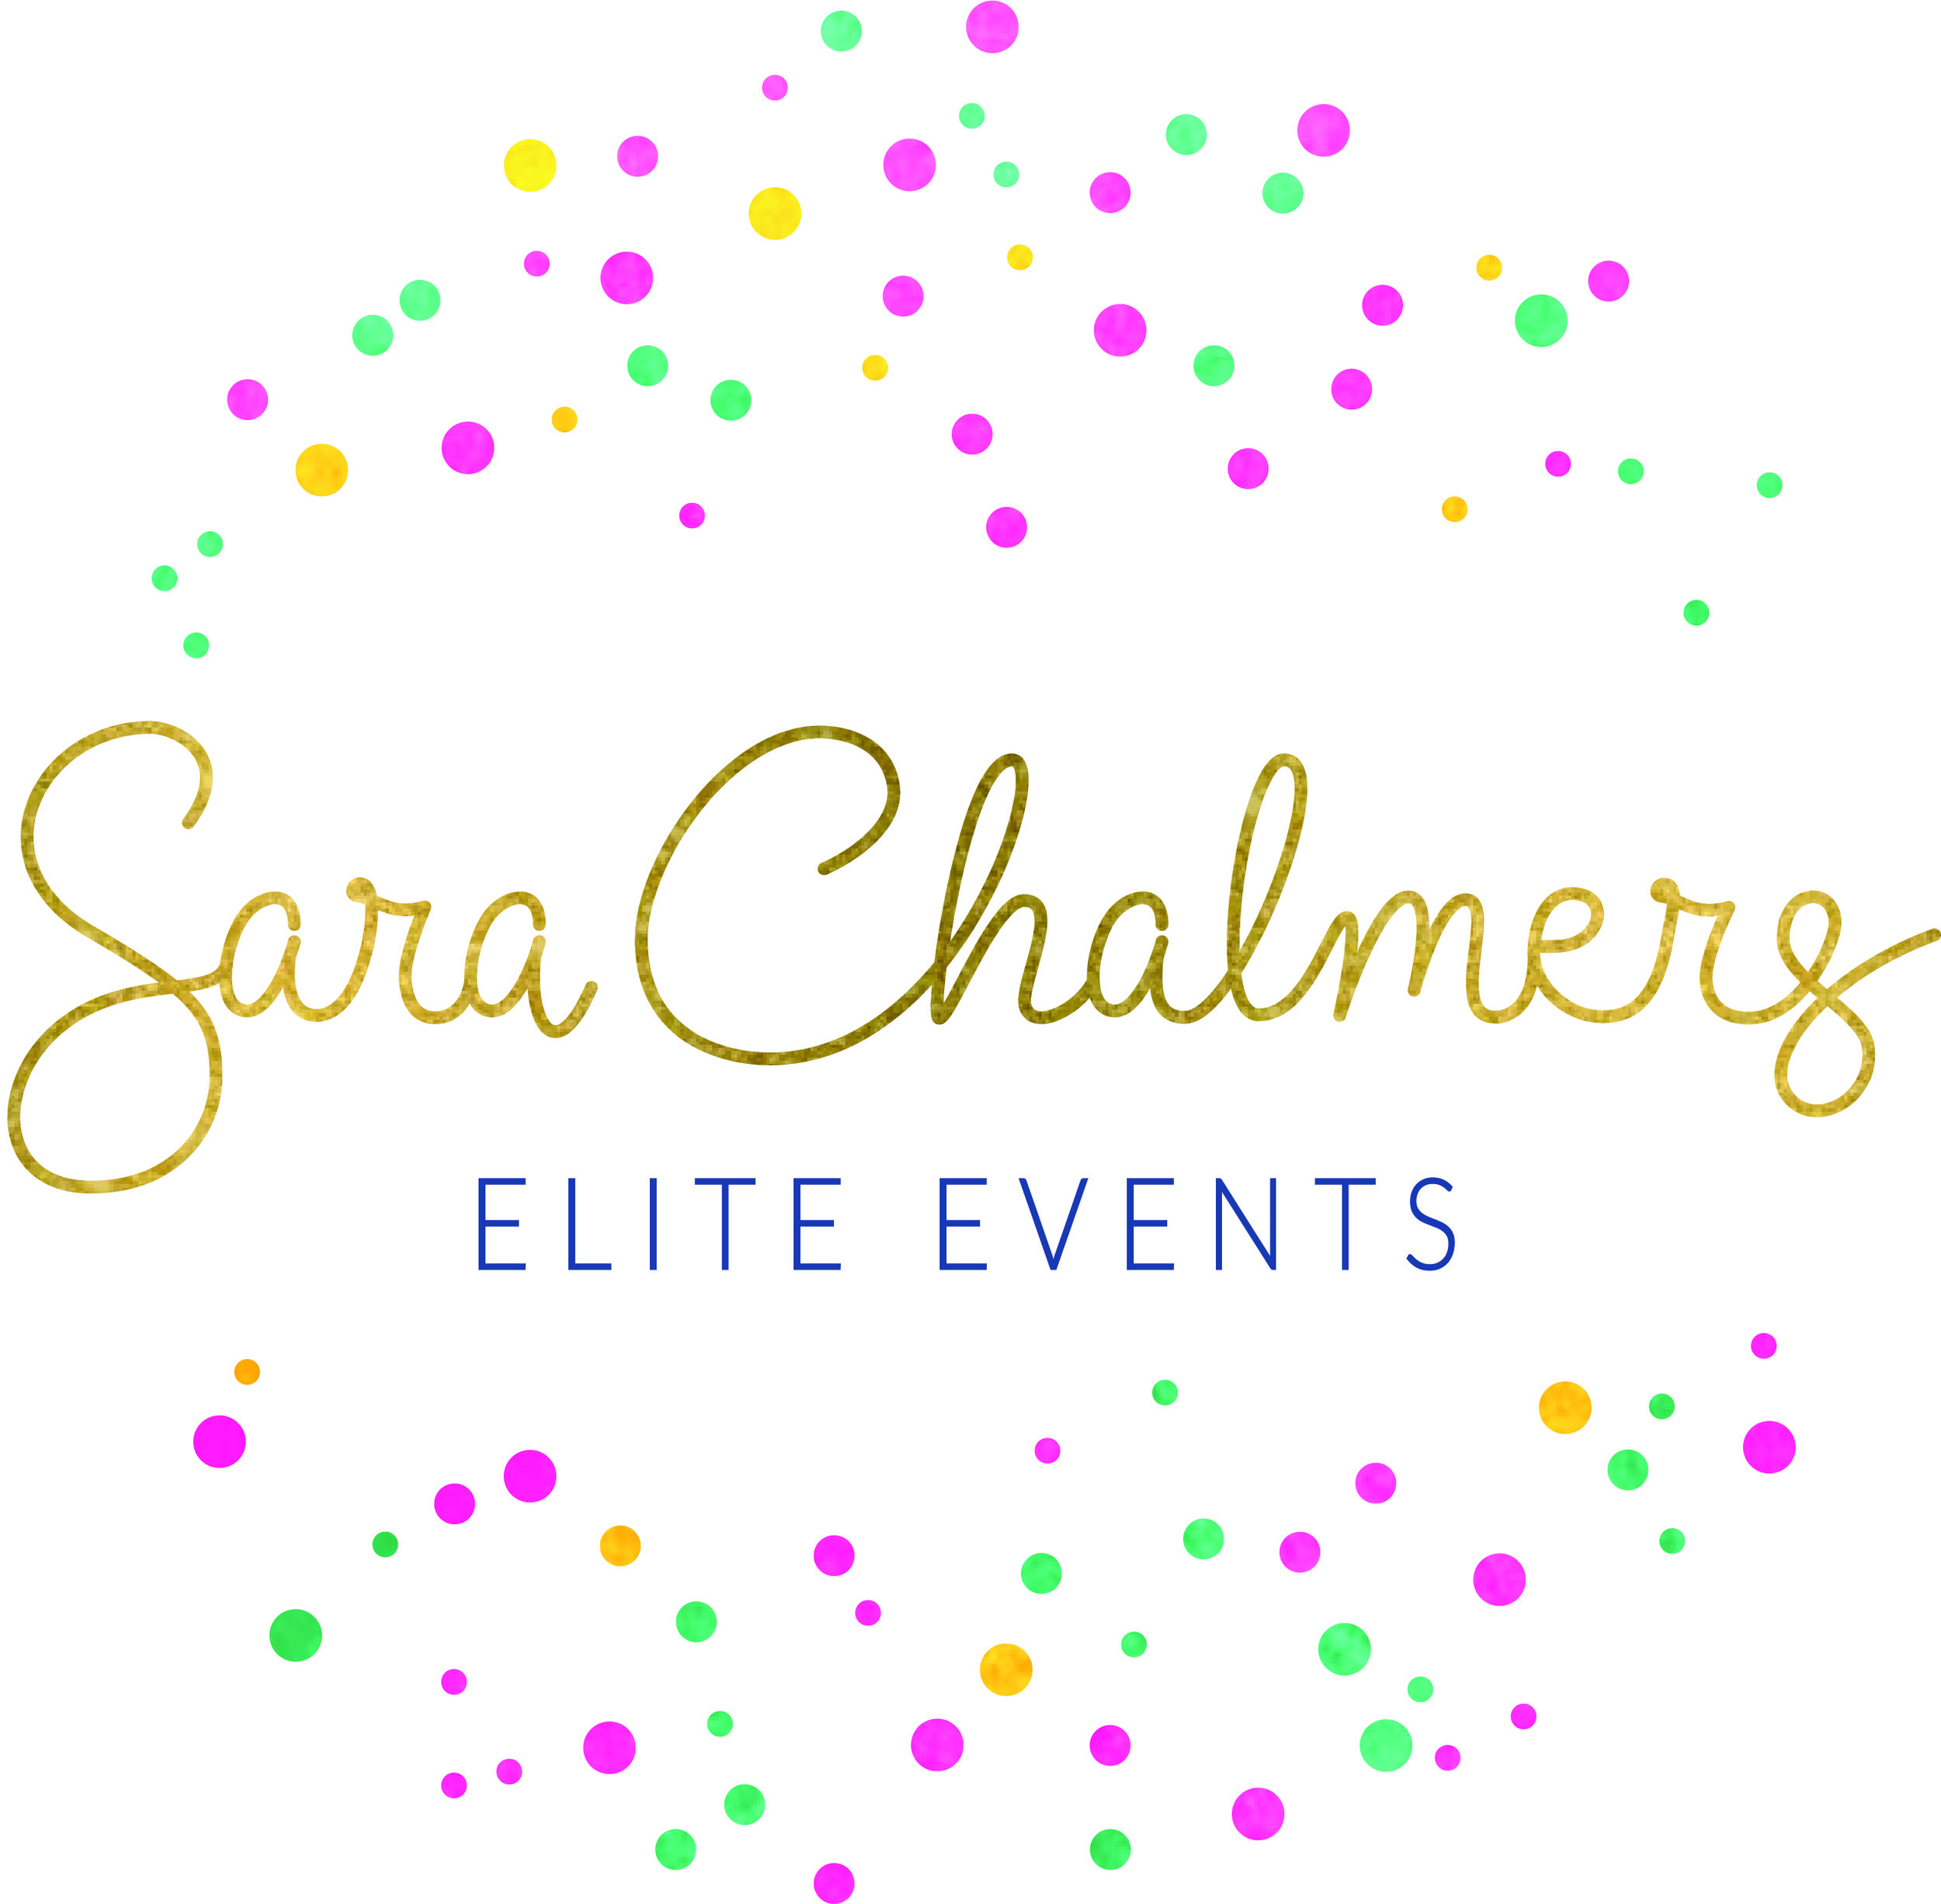 Sara Chalmers Elite Events